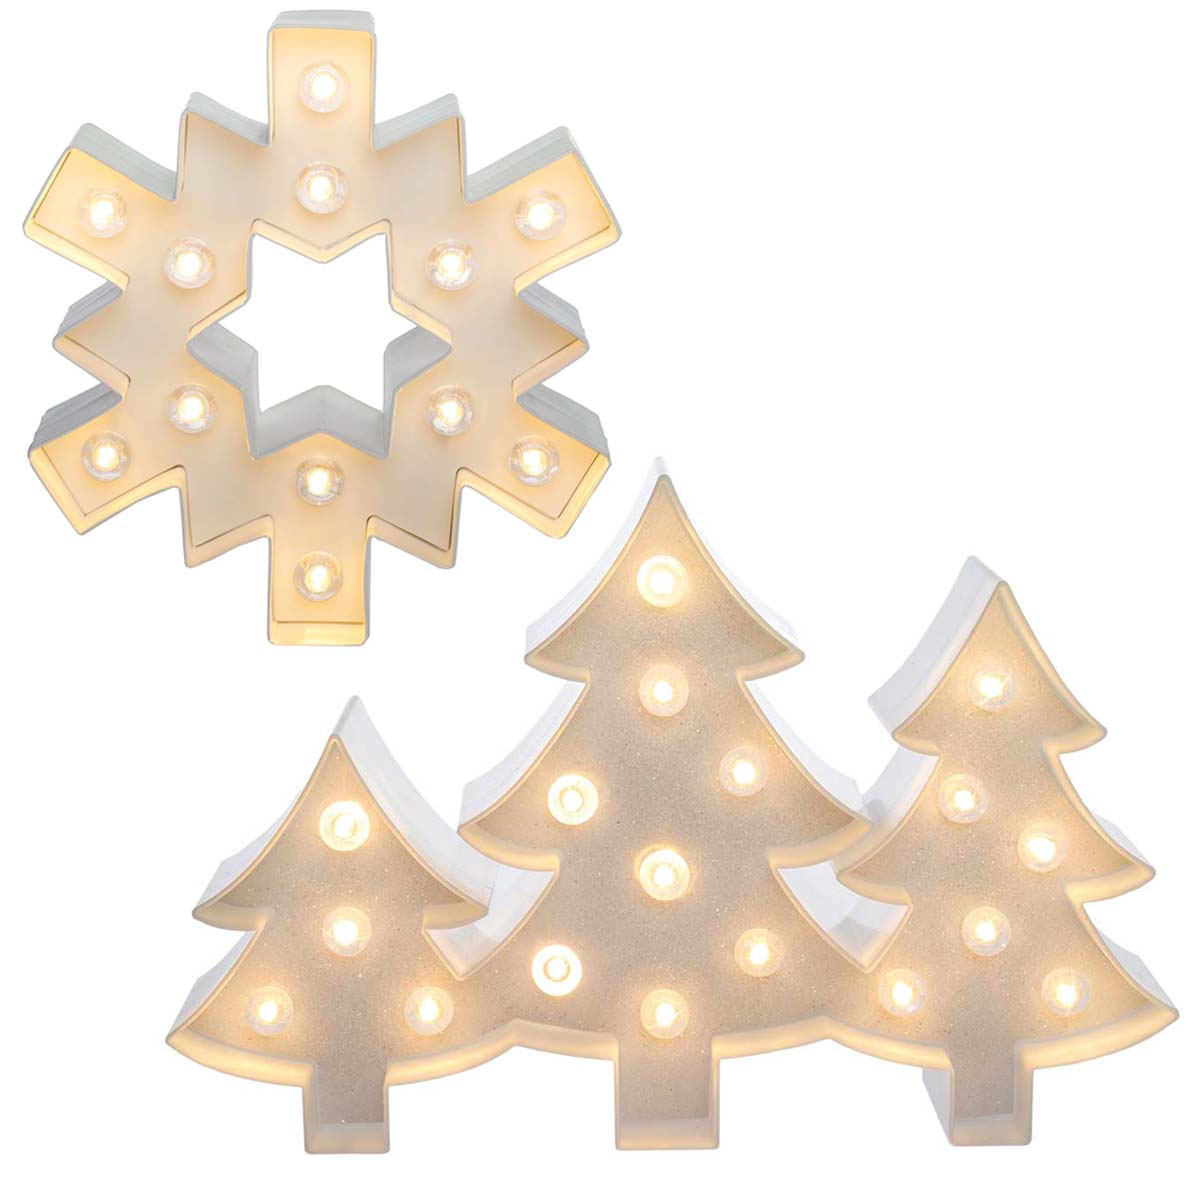 Heidi Swapp (Set of 2) LED Lighted Holiday Marquee Sign Kits Trees & Snowflake Christmas Décor Home Decoration